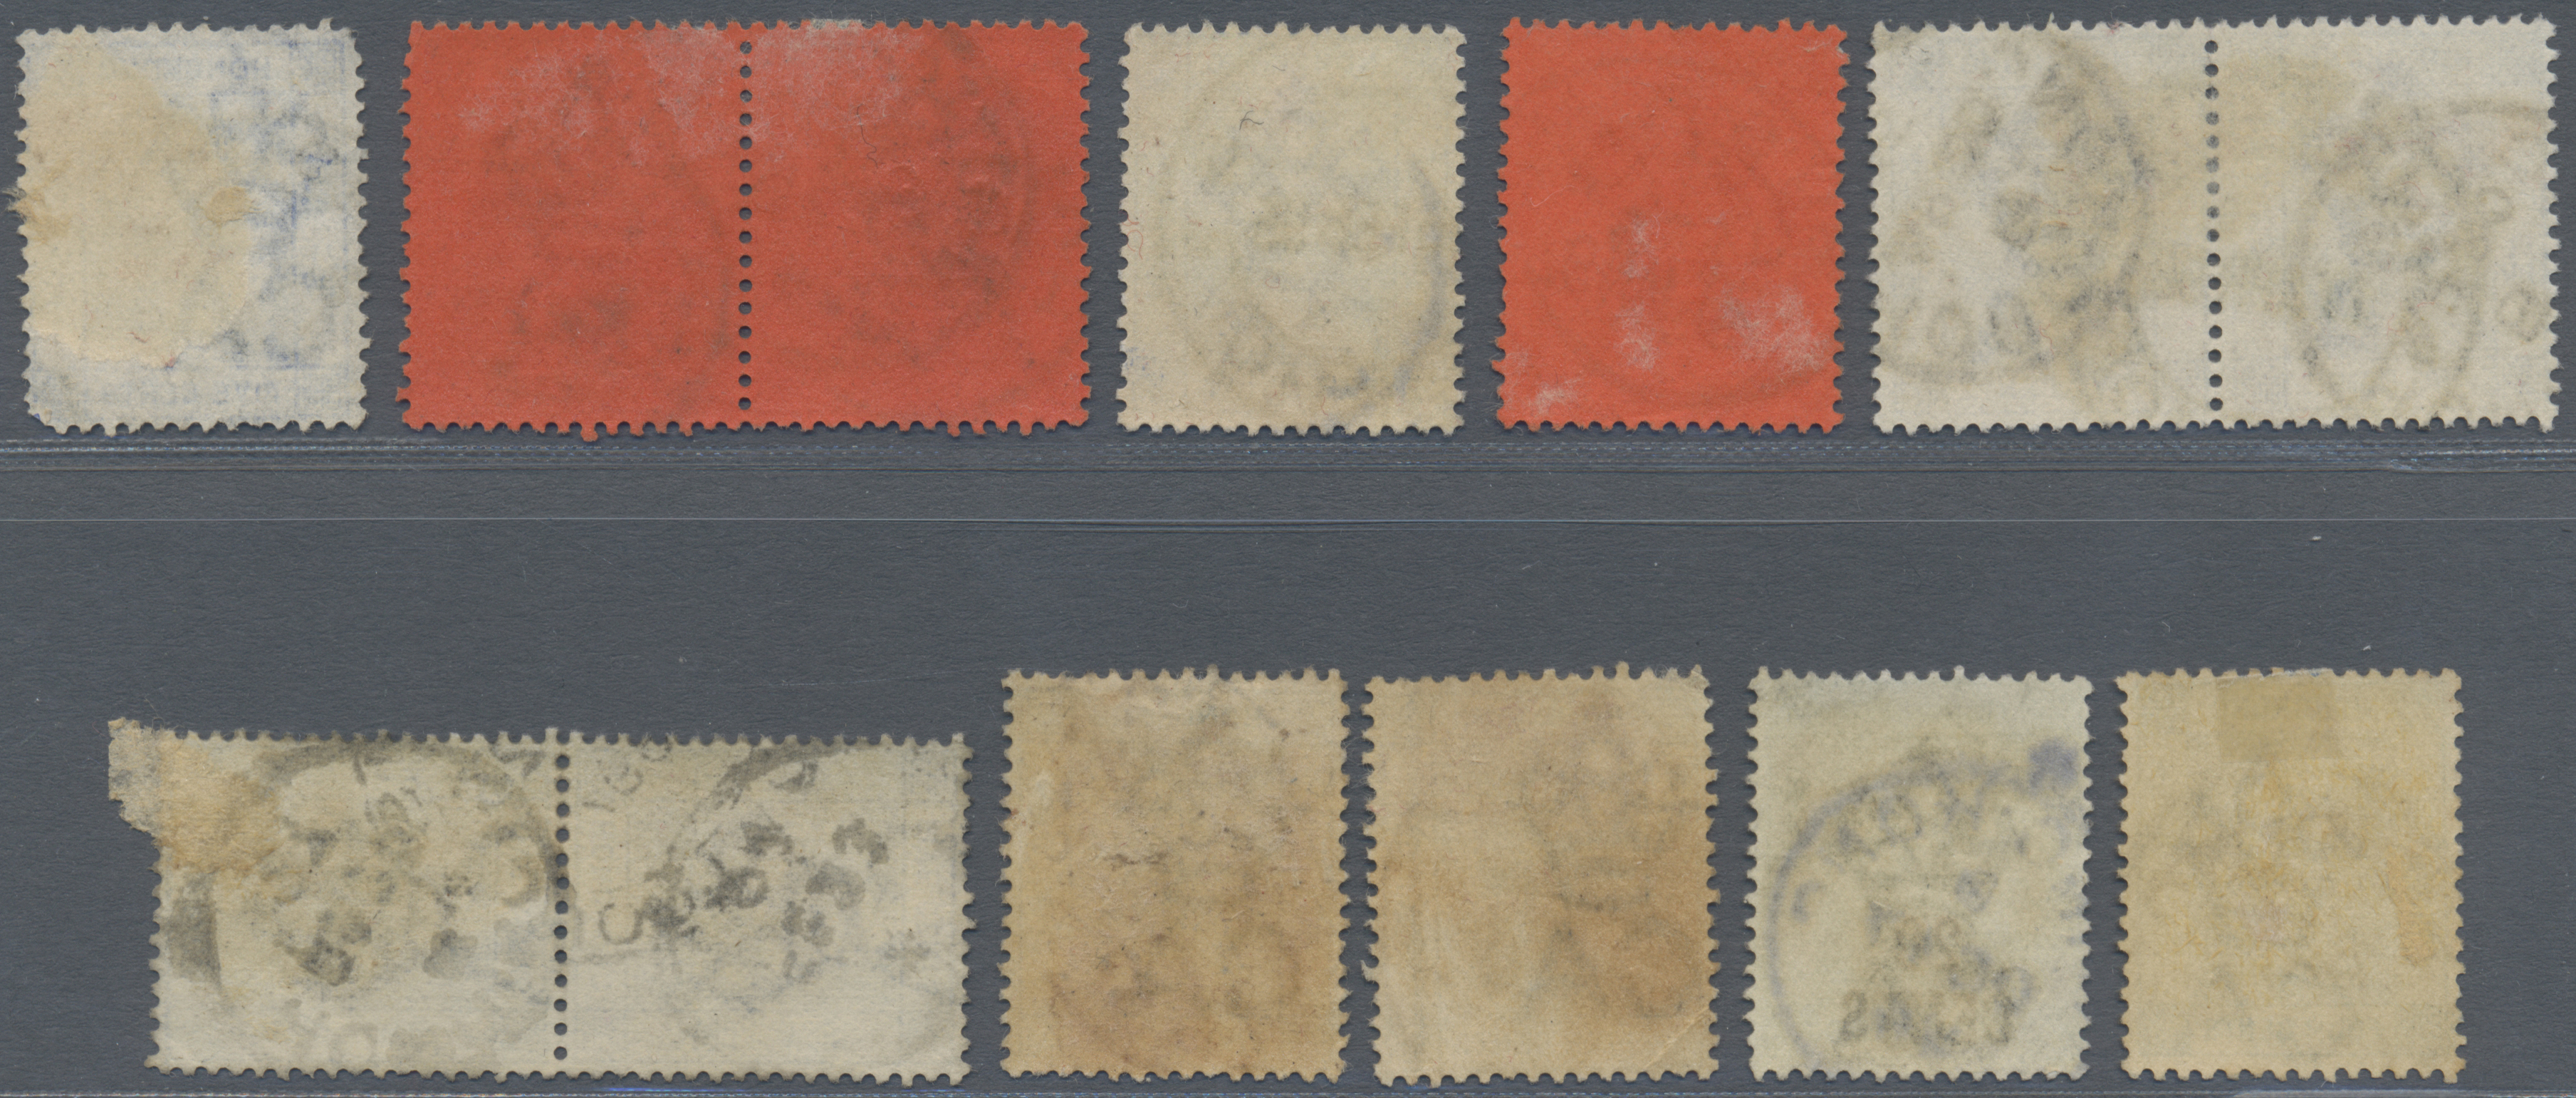 Lot 05972 - China - Stempel  -  Auktionshaus Christoph Gärtner GmbH & Co. KG Sale #45- Special Auction China